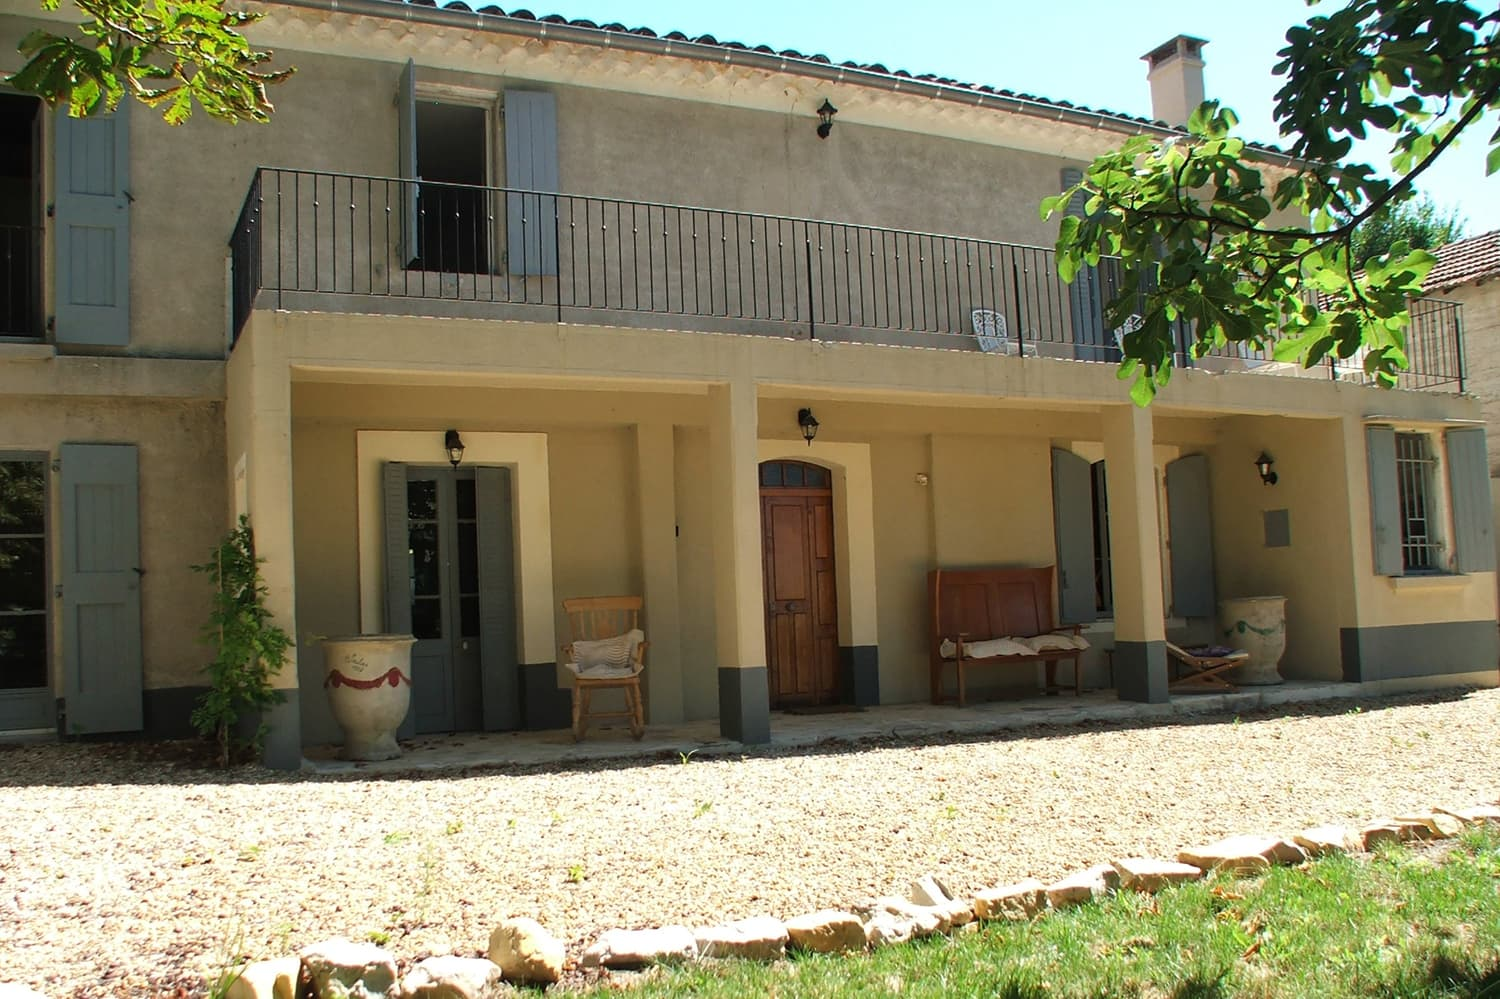 Holiday accommodation in Boisset-et-Gaujac, Occitanie